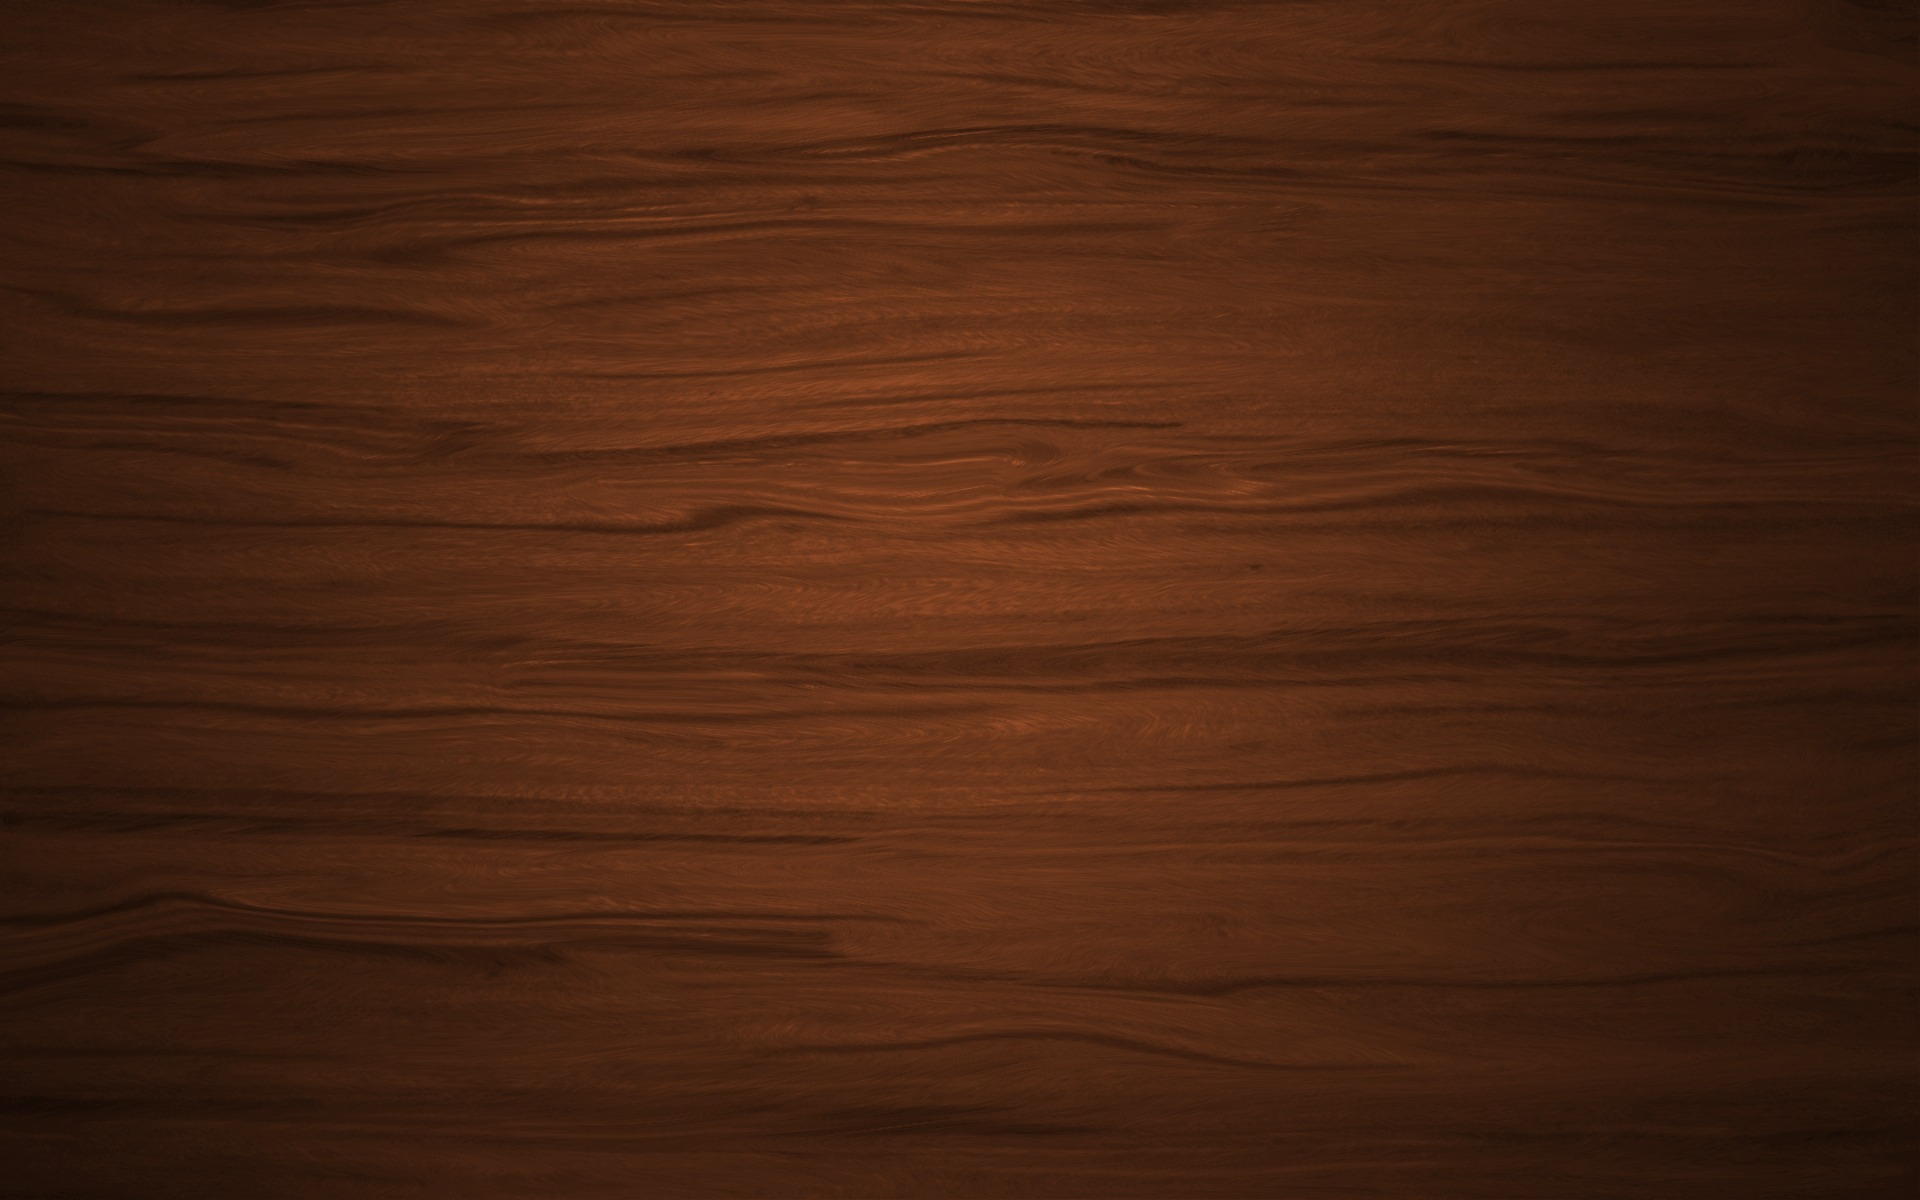 Wood Textures Wallpaper 1920x1200 Wood Textures Wood Texture 1920x1200